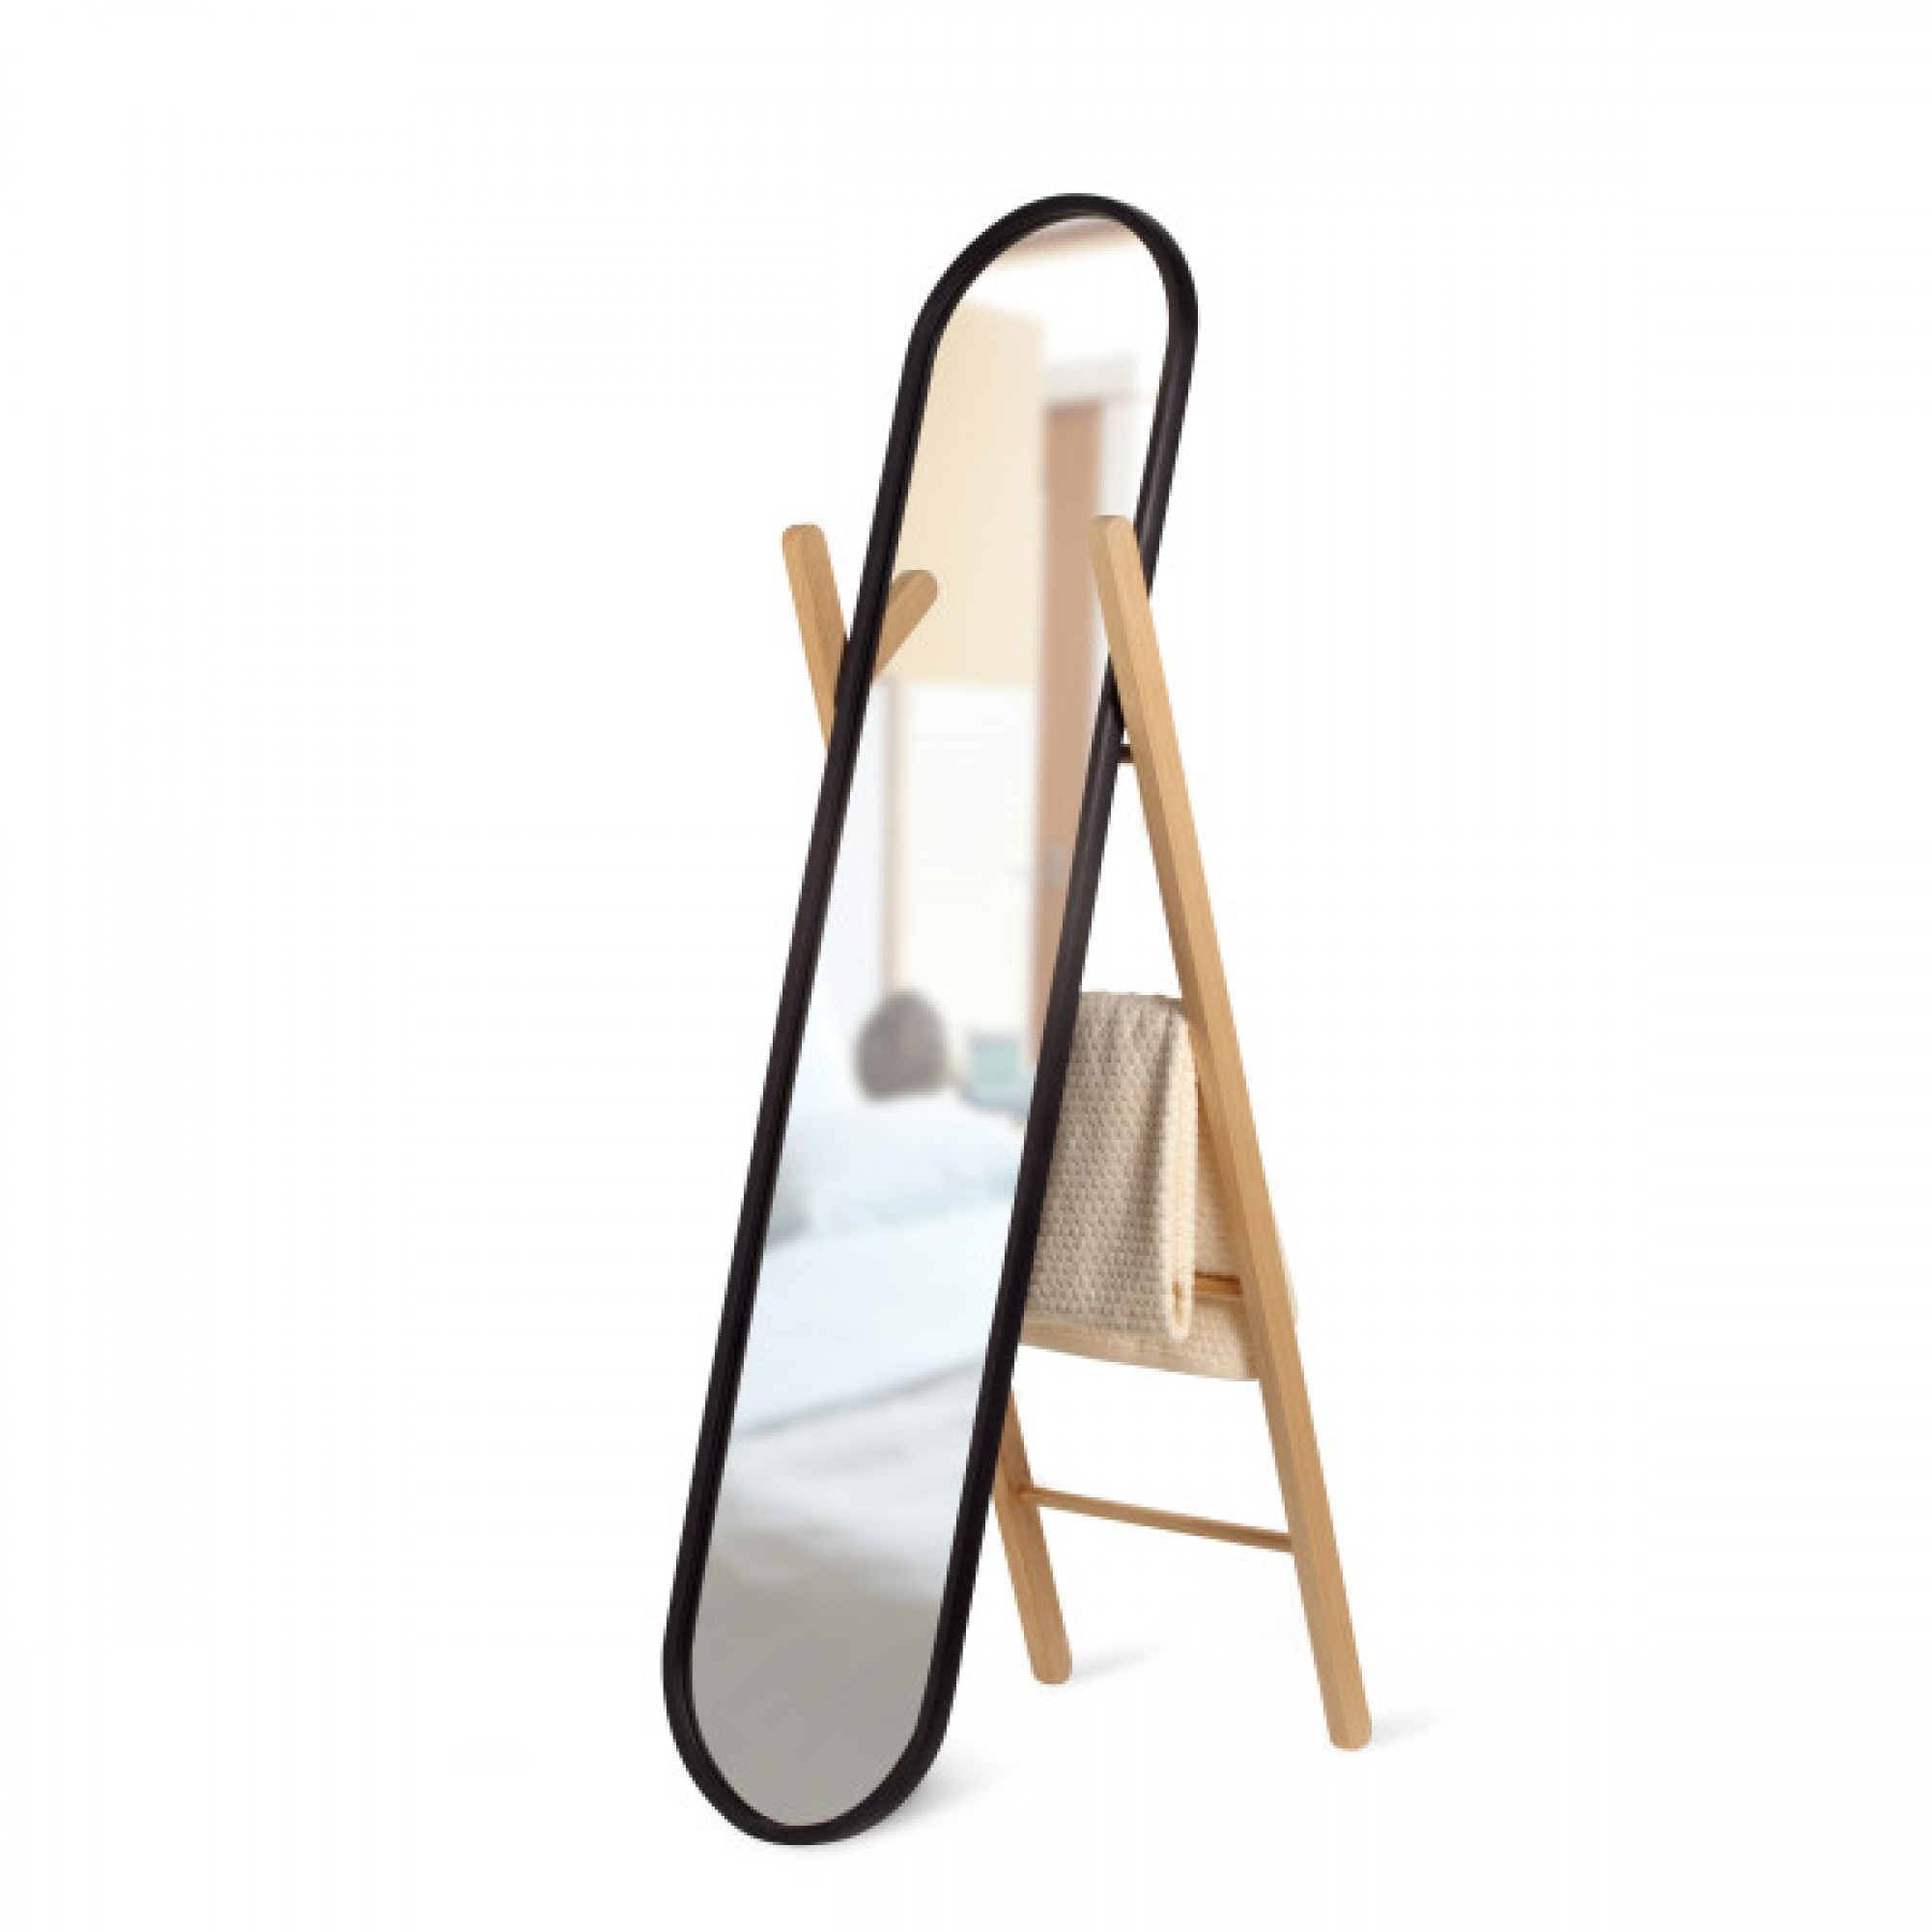 Floor mirror with black rubber frame and oak - HUB